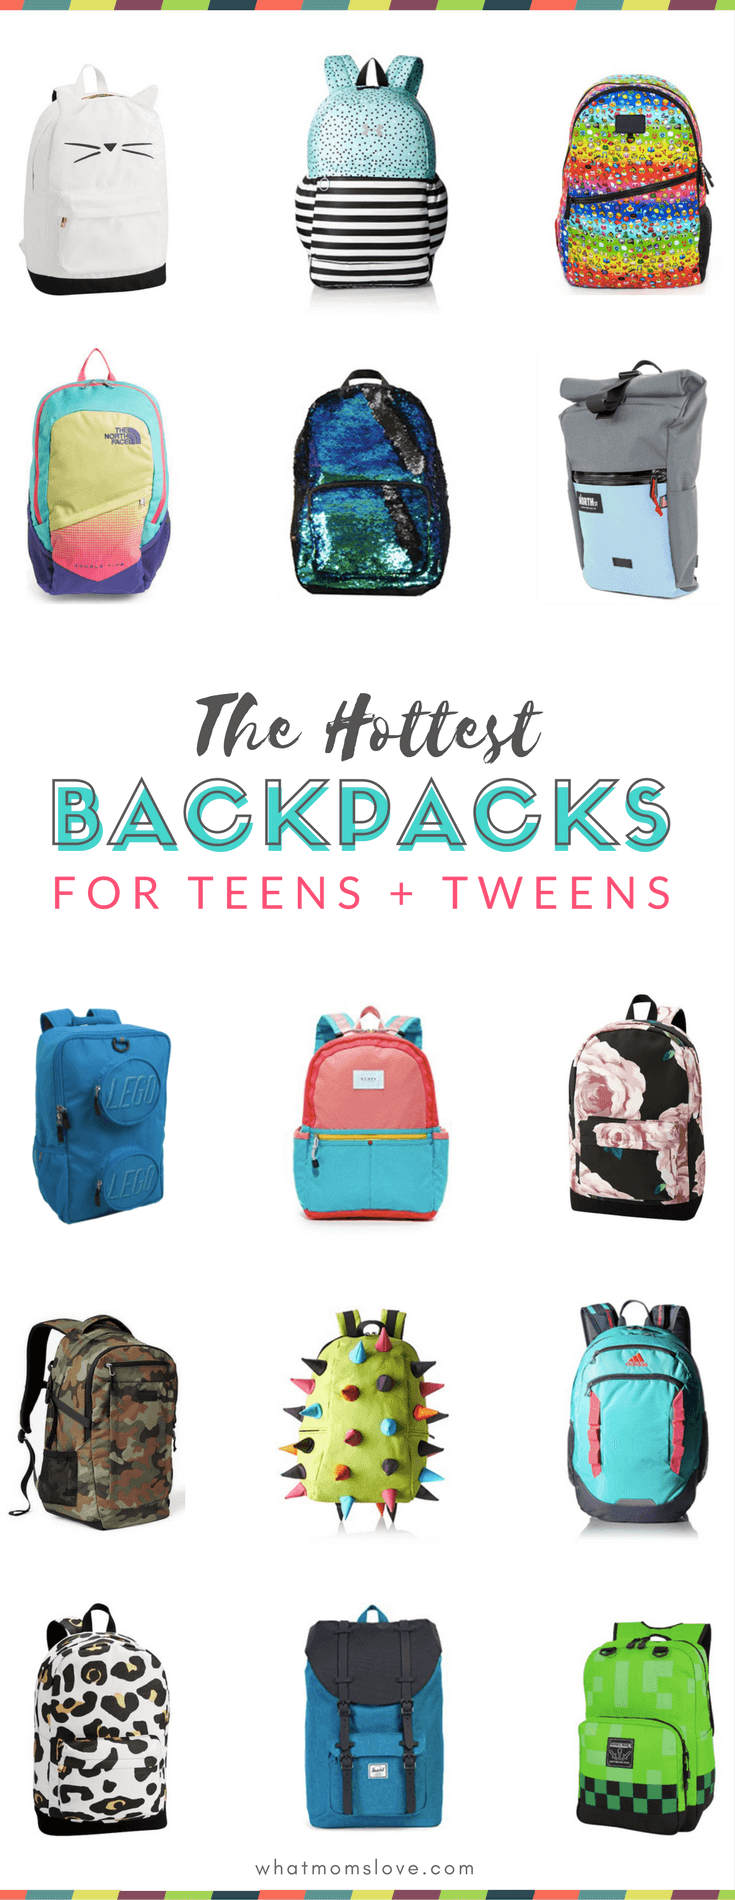 Cool Backpacks for Teens and Tweens for school | Whether you're looking for something hipster, cute or sporty these best picks for girls and boys have something for everyone! Part of the Back to School shopping guide